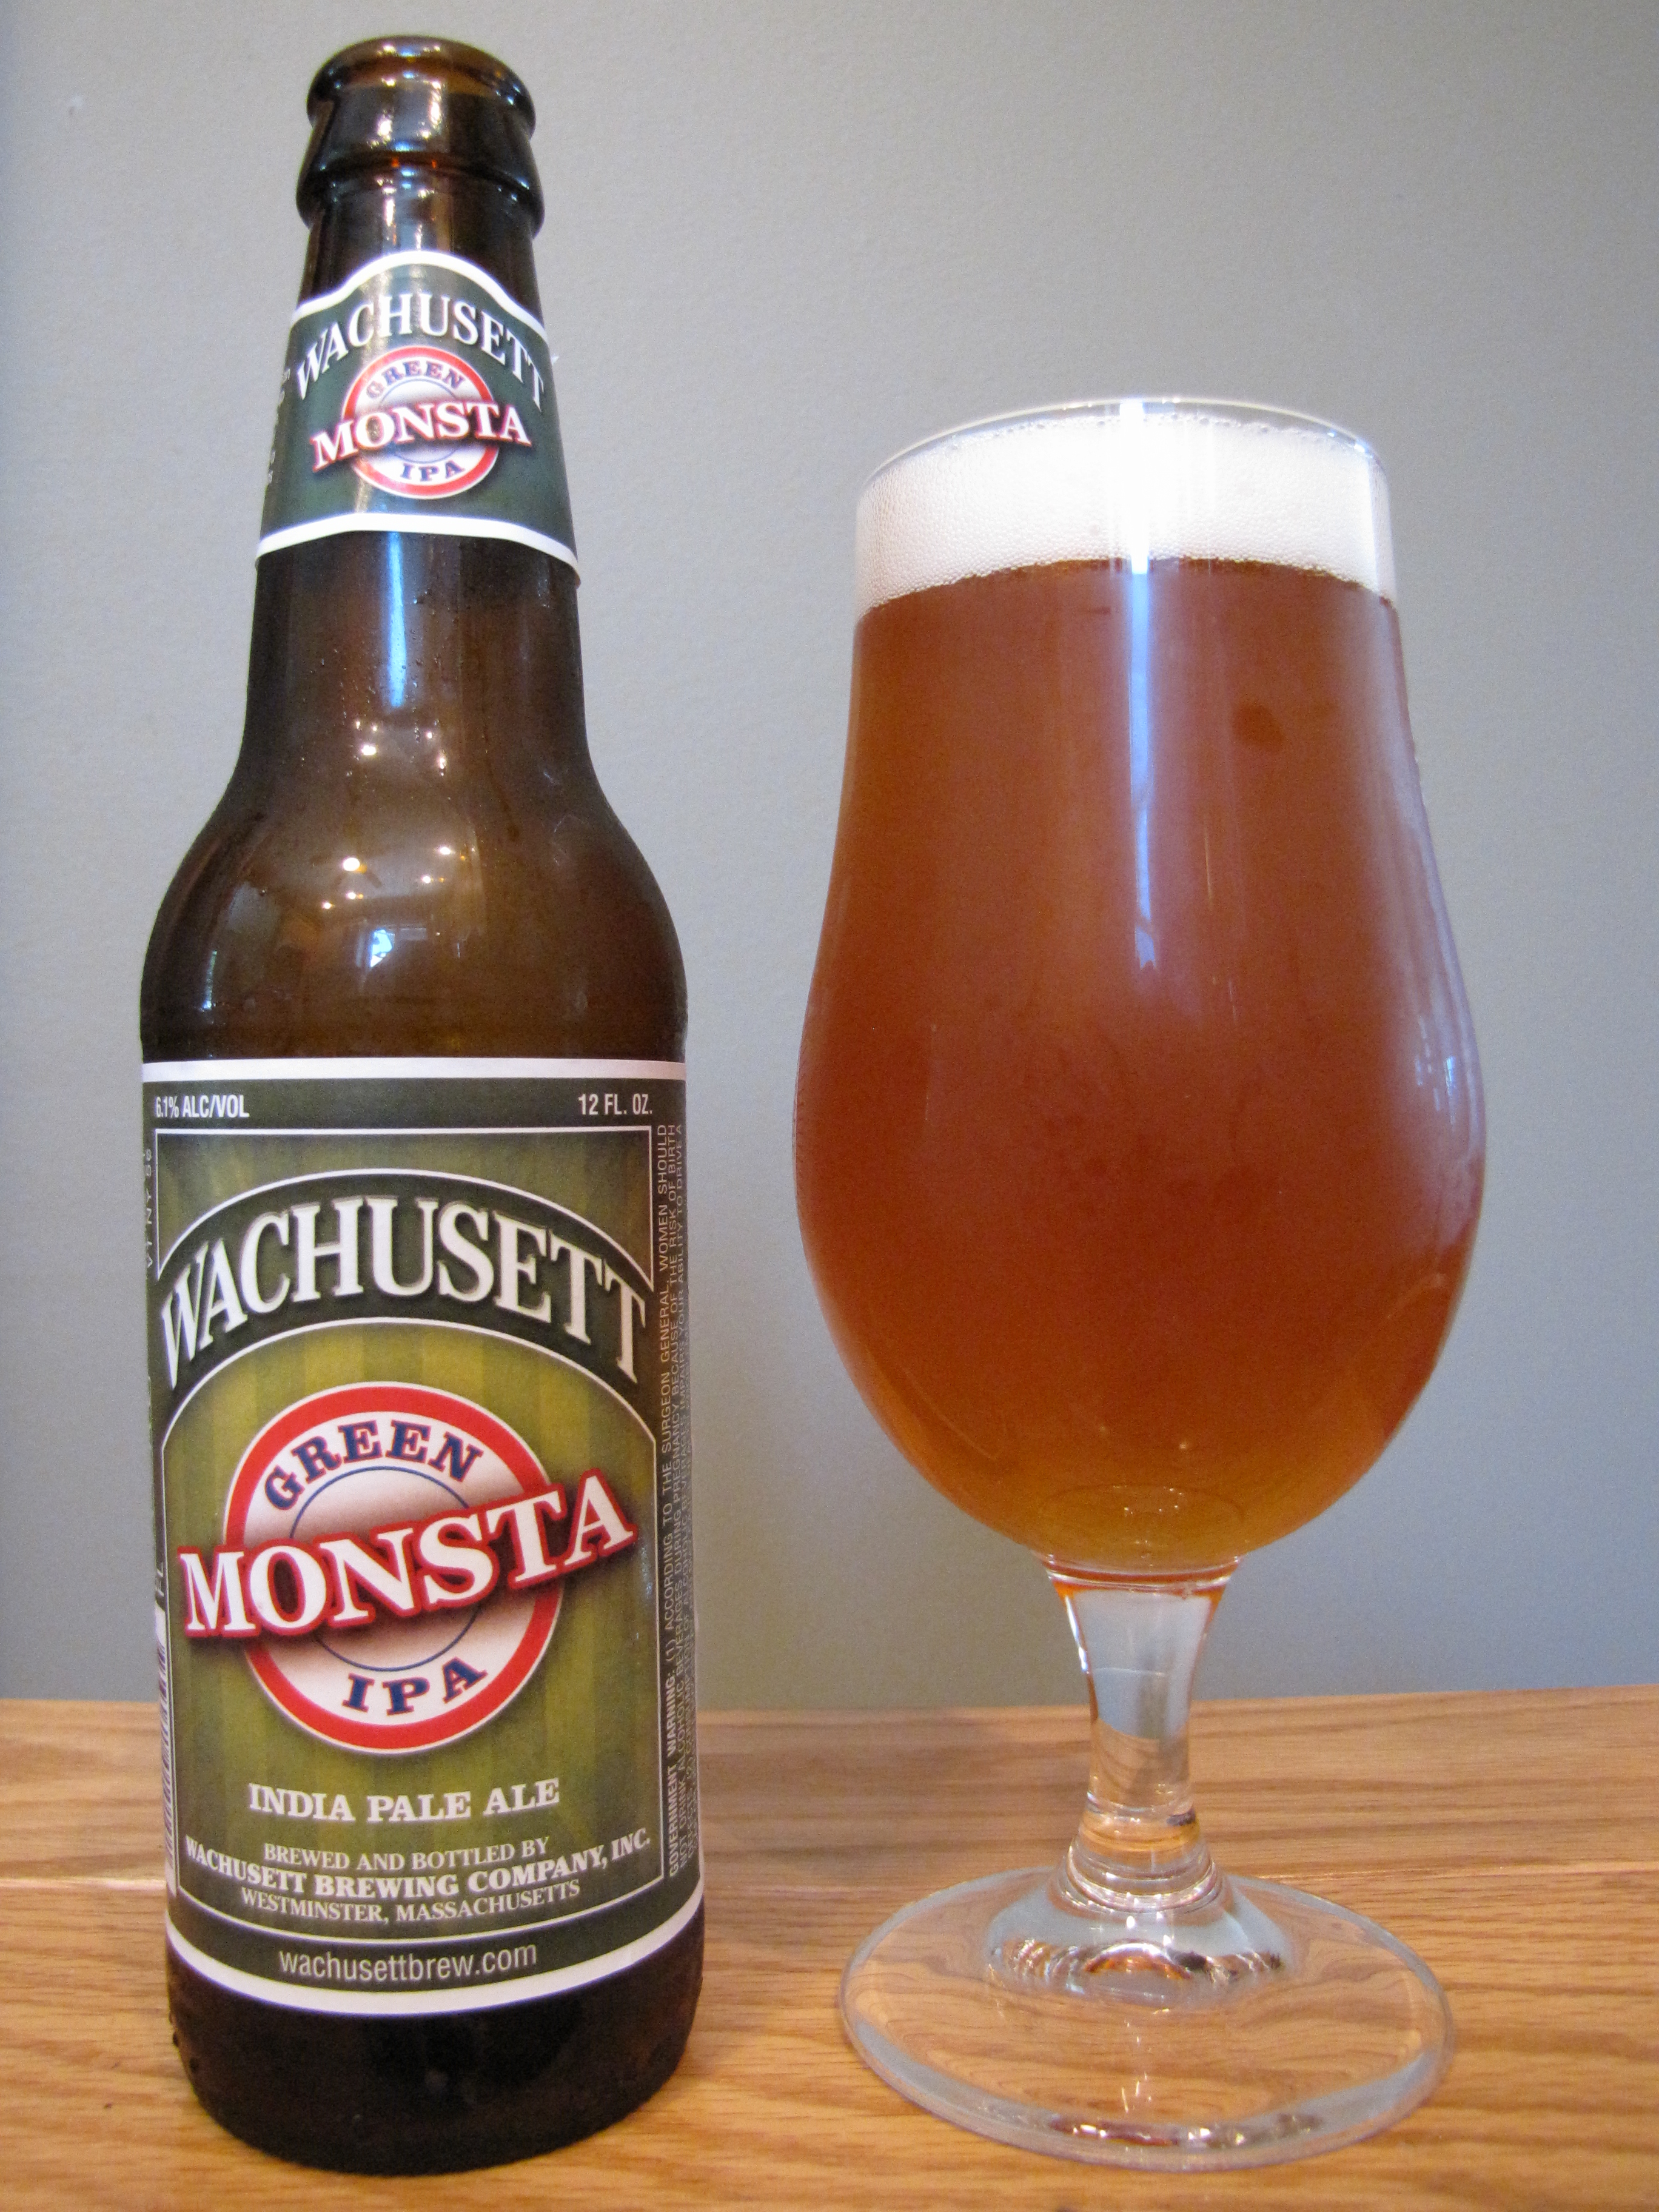 Wachusett Green Monsta IPA